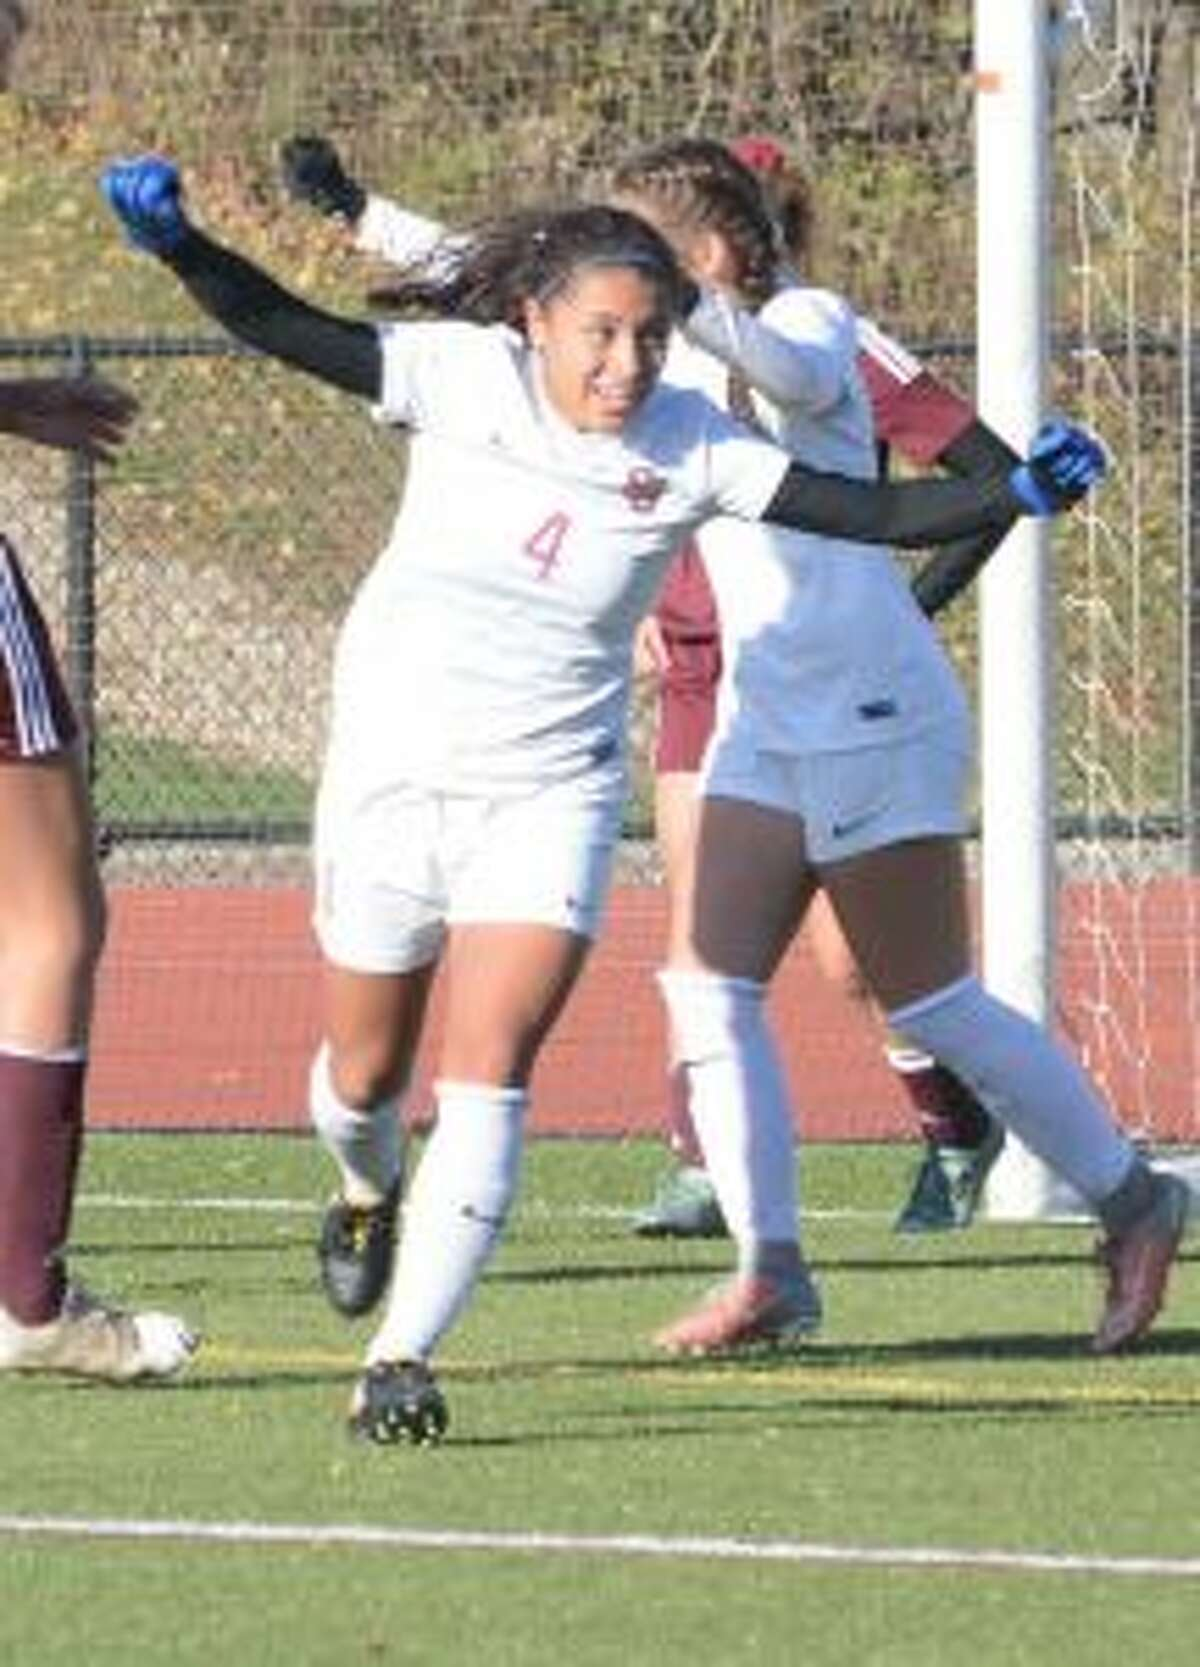 Jessica Mazo celebrates after scoring one of her two goals in the 5-1 victory. - Andy Hutchison photos